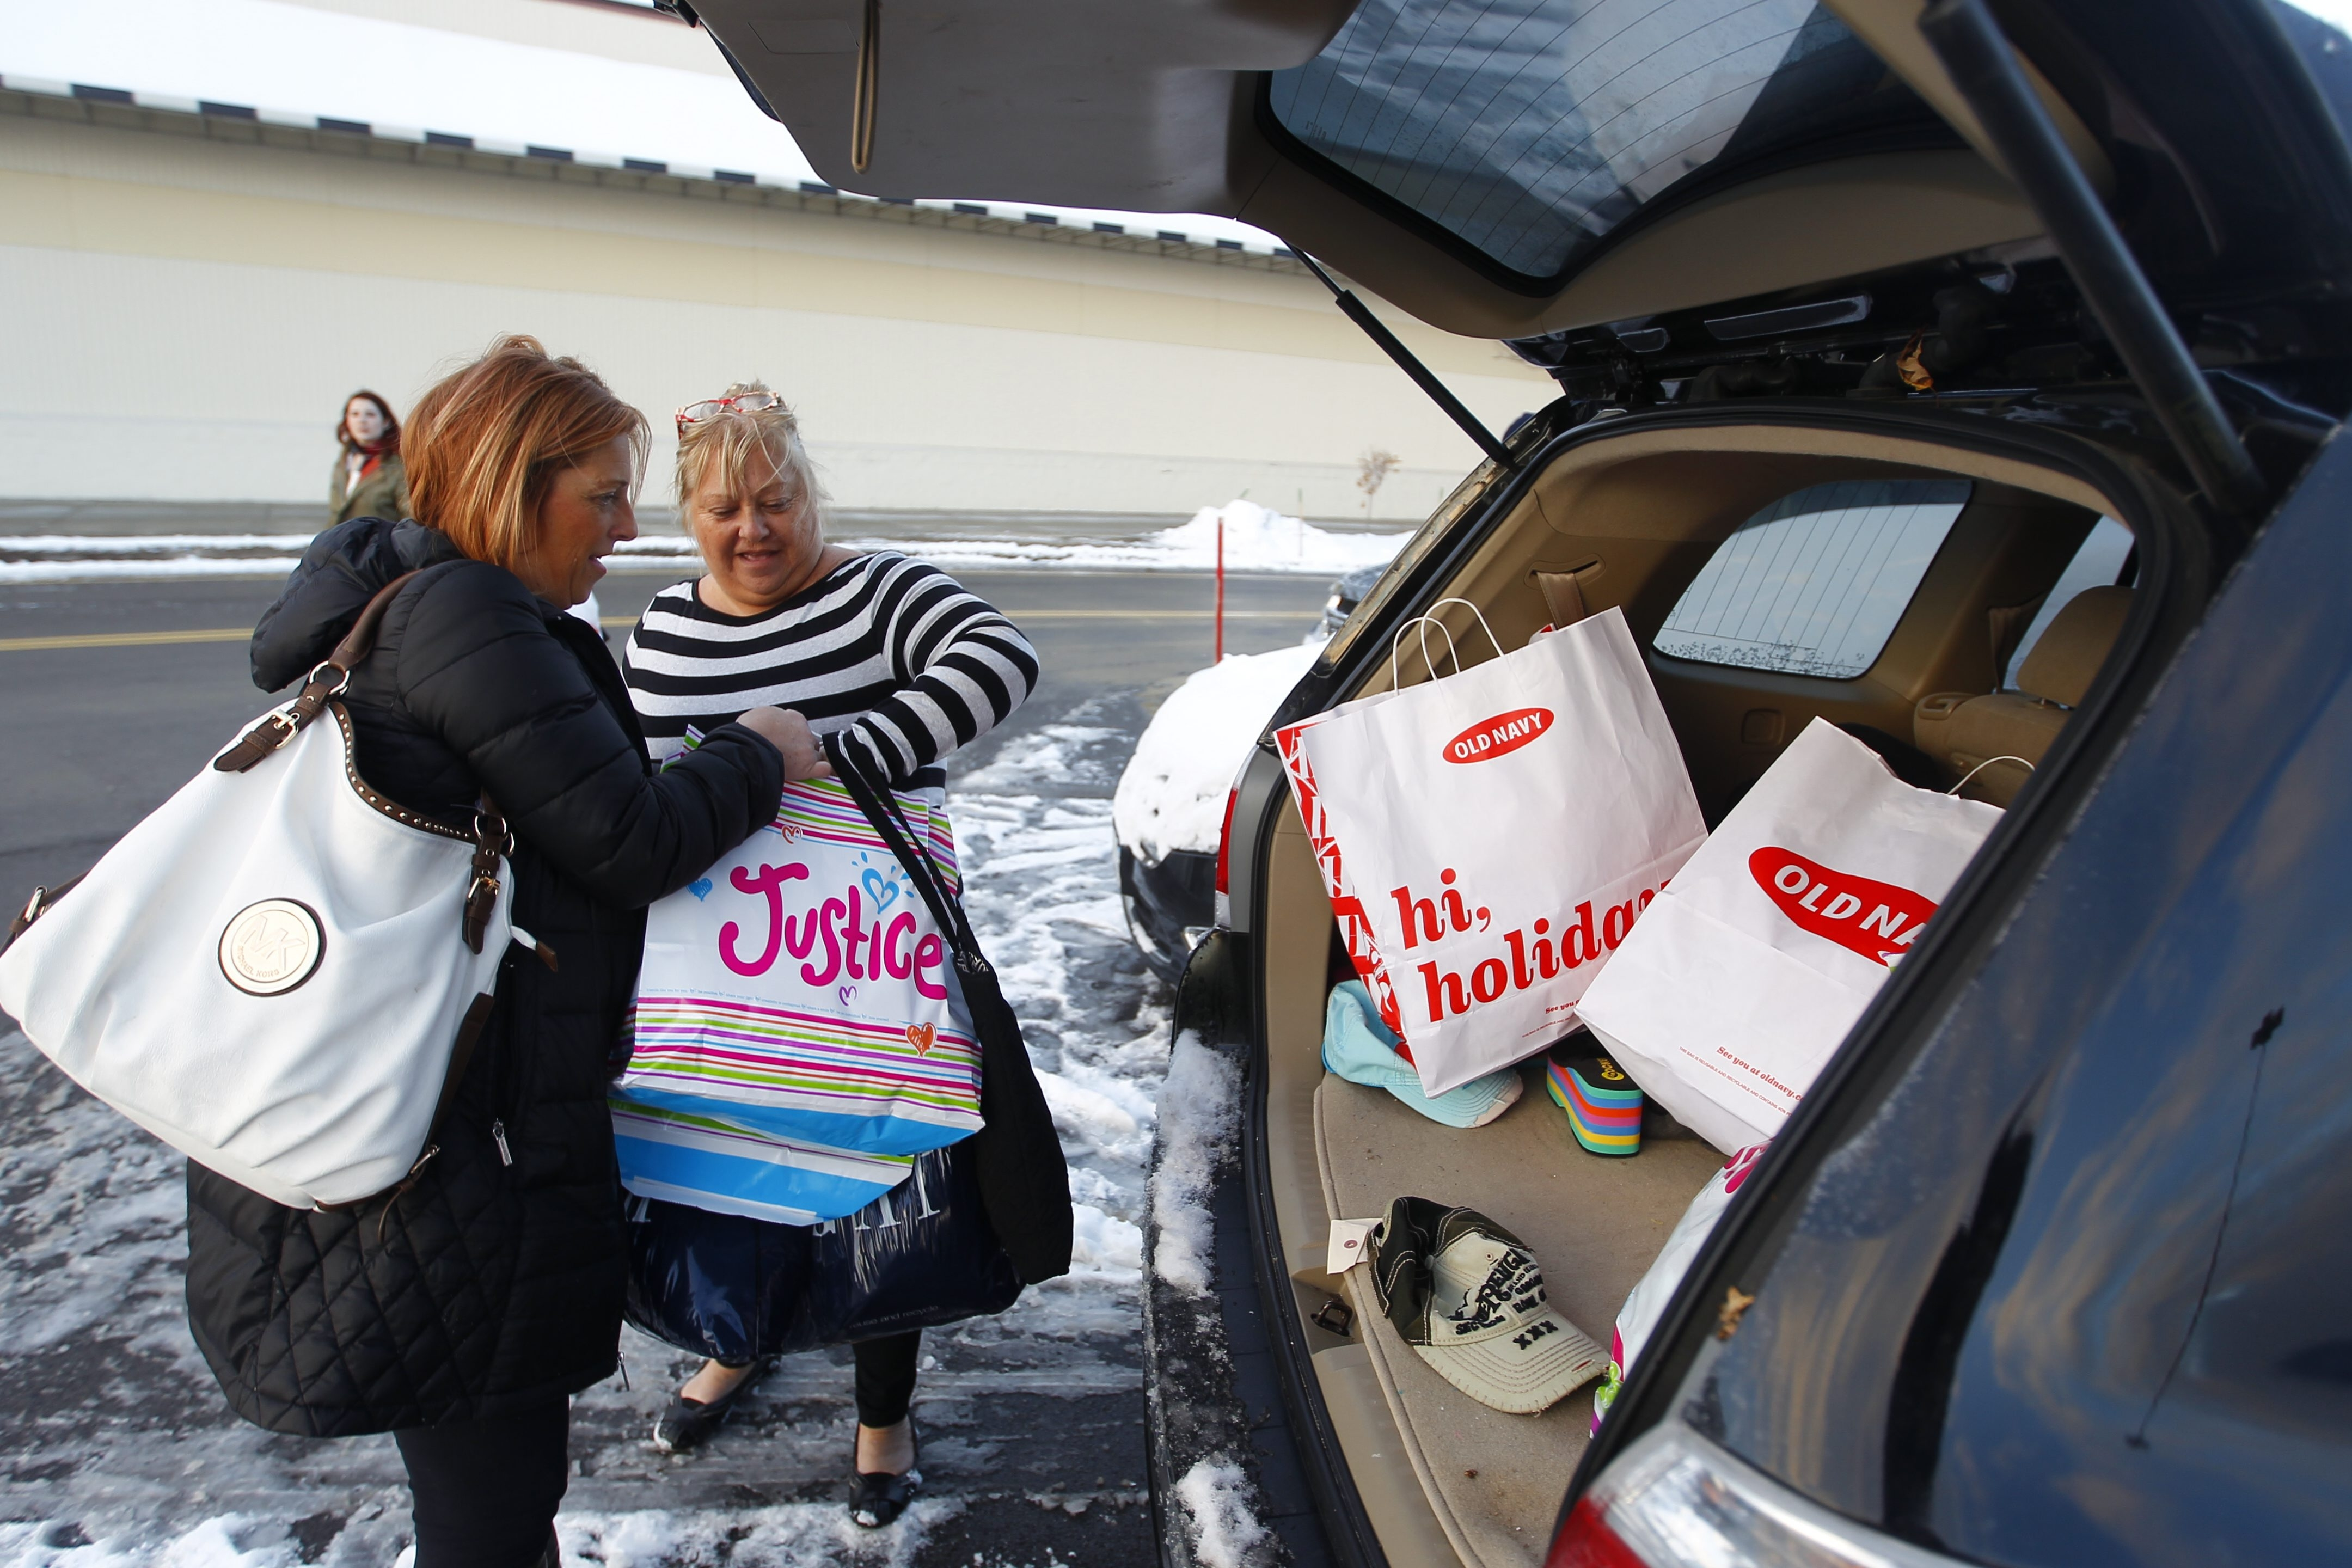 Above left, Chris McKenzie and her daughter Brandi Alba load up the car after shopping on Black Friday  at the Walden Galleria. Above right,  Kim Paap, left, Marrianna Cantella and Joan Sullivan shop at the Fashion Outlet Mall in Niagara Falls on Friday. Below,  Vasily Ovsyannikov and Andrew Ned take their bargains to the car at Cabela's in Cheektowaga on Black Friday.